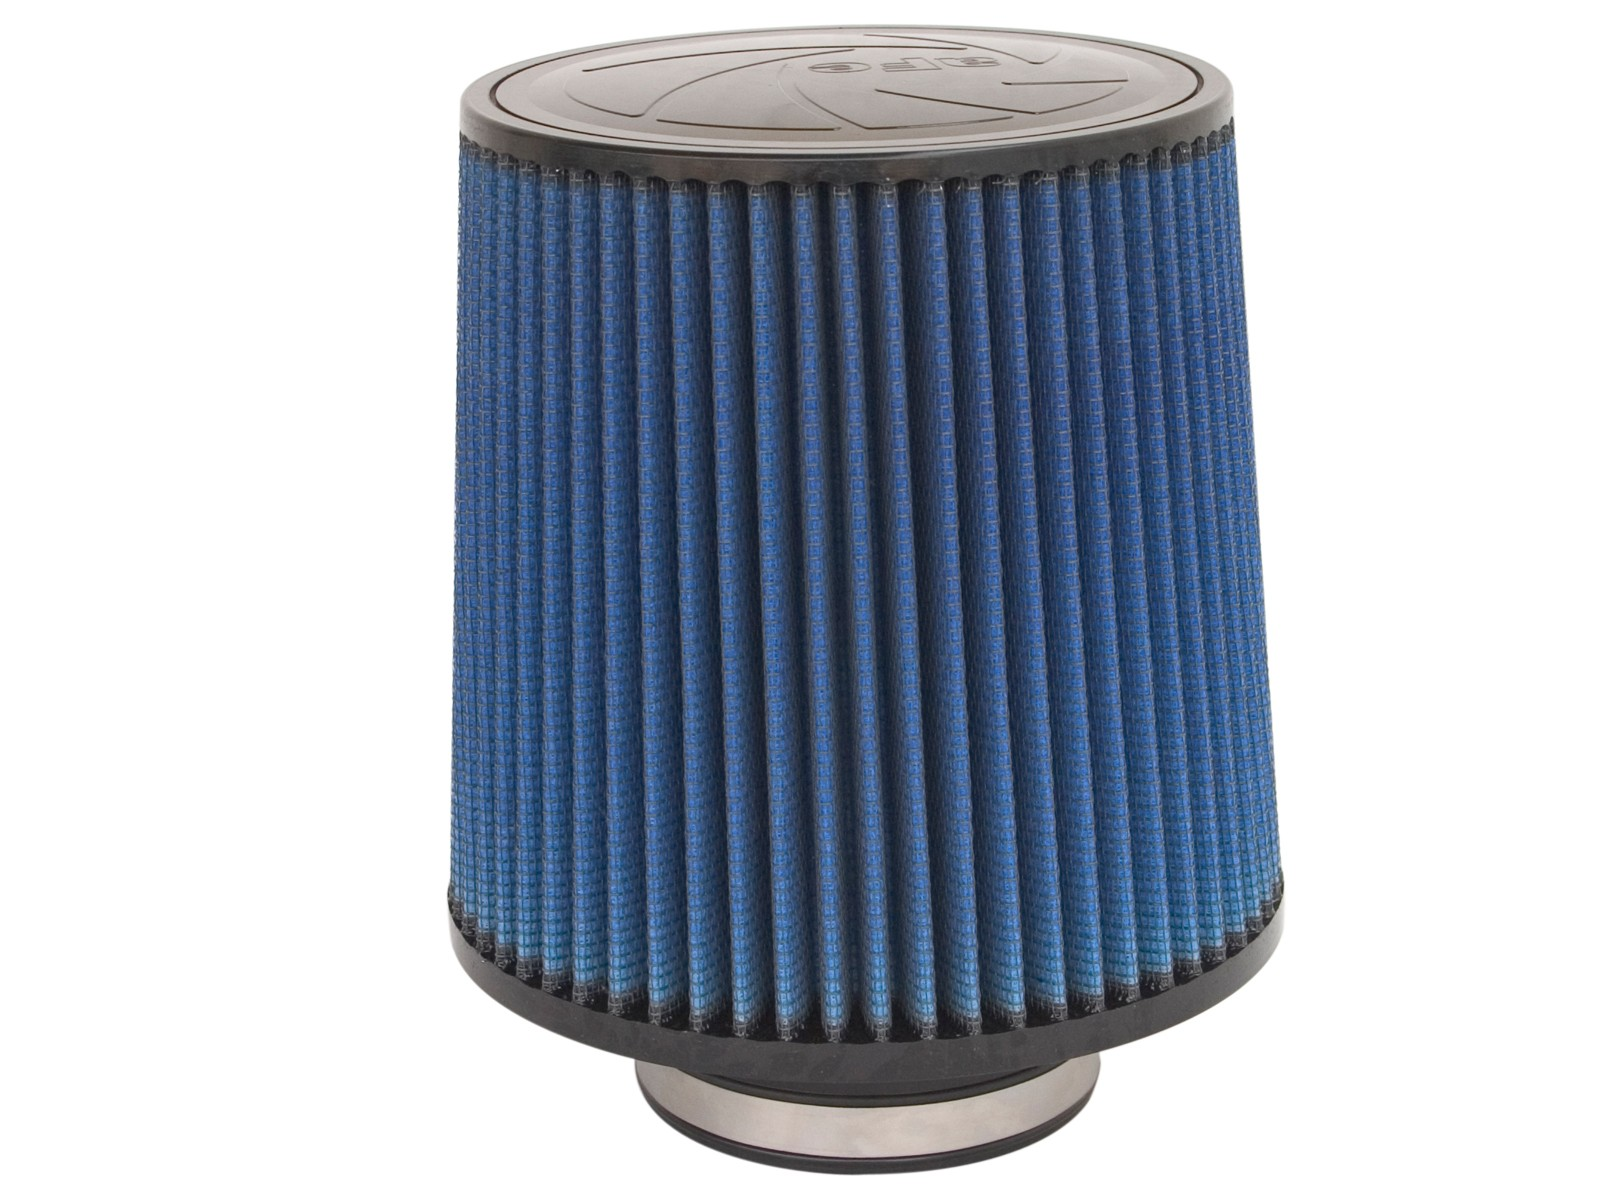 aFe POWER 24-90009 Magnum FLOW Pro 5R Air Filter